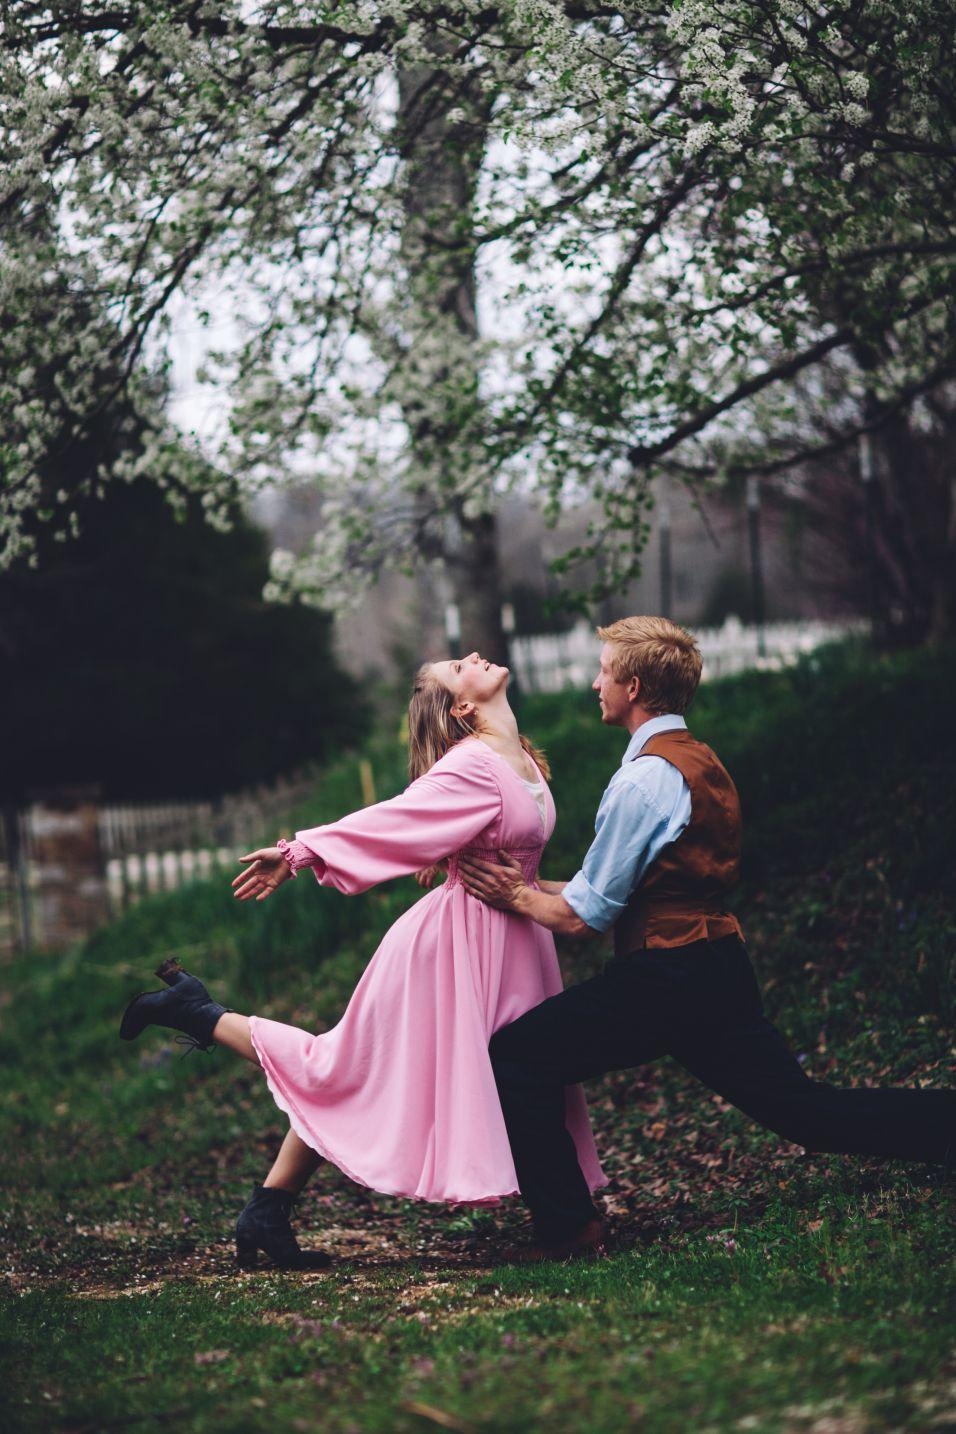 """<p>For those who prefer the romantic route, consider this DIY couples costume inspired by the movie musical's beloved """"A Million Dreams"""" scene. Use chiffon and special sewing techniques to make Charity Barnum's pink dress from scratch. </p><p><strong>Get the tutorial at <a href=""""https://bella-maes.com/2018/05/04/the-great-endeavor-recreating-greatest-showman-costumes-charitys-pink-dress/"""" rel=""""nofollow noopener"""" target=""""_blank"""" data-ylk=""""slk:Bella Mae's Sewing Corner"""" class=""""link rapid-noclick-resp"""">Bella Mae's Sewing Corner</a>. </strong></p><p><a class=""""link rapid-noclick-resp"""" href=""""https://www.amazon.com/Chiffon-Continuous-Wedding-Decoration-Barcelonetta/dp/B07RB8G3YV/ref=sr_1_2?tag=syn-yahoo-20&ascsubtag=%5Bartid%7C10050.g.29402076%5Bsrc%7Cyahoo-us"""" rel=""""nofollow noopener"""" target=""""_blank"""" data-ylk=""""slk:SHOP CHIFFON"""">SHOP CHIFFON</a></p>"""